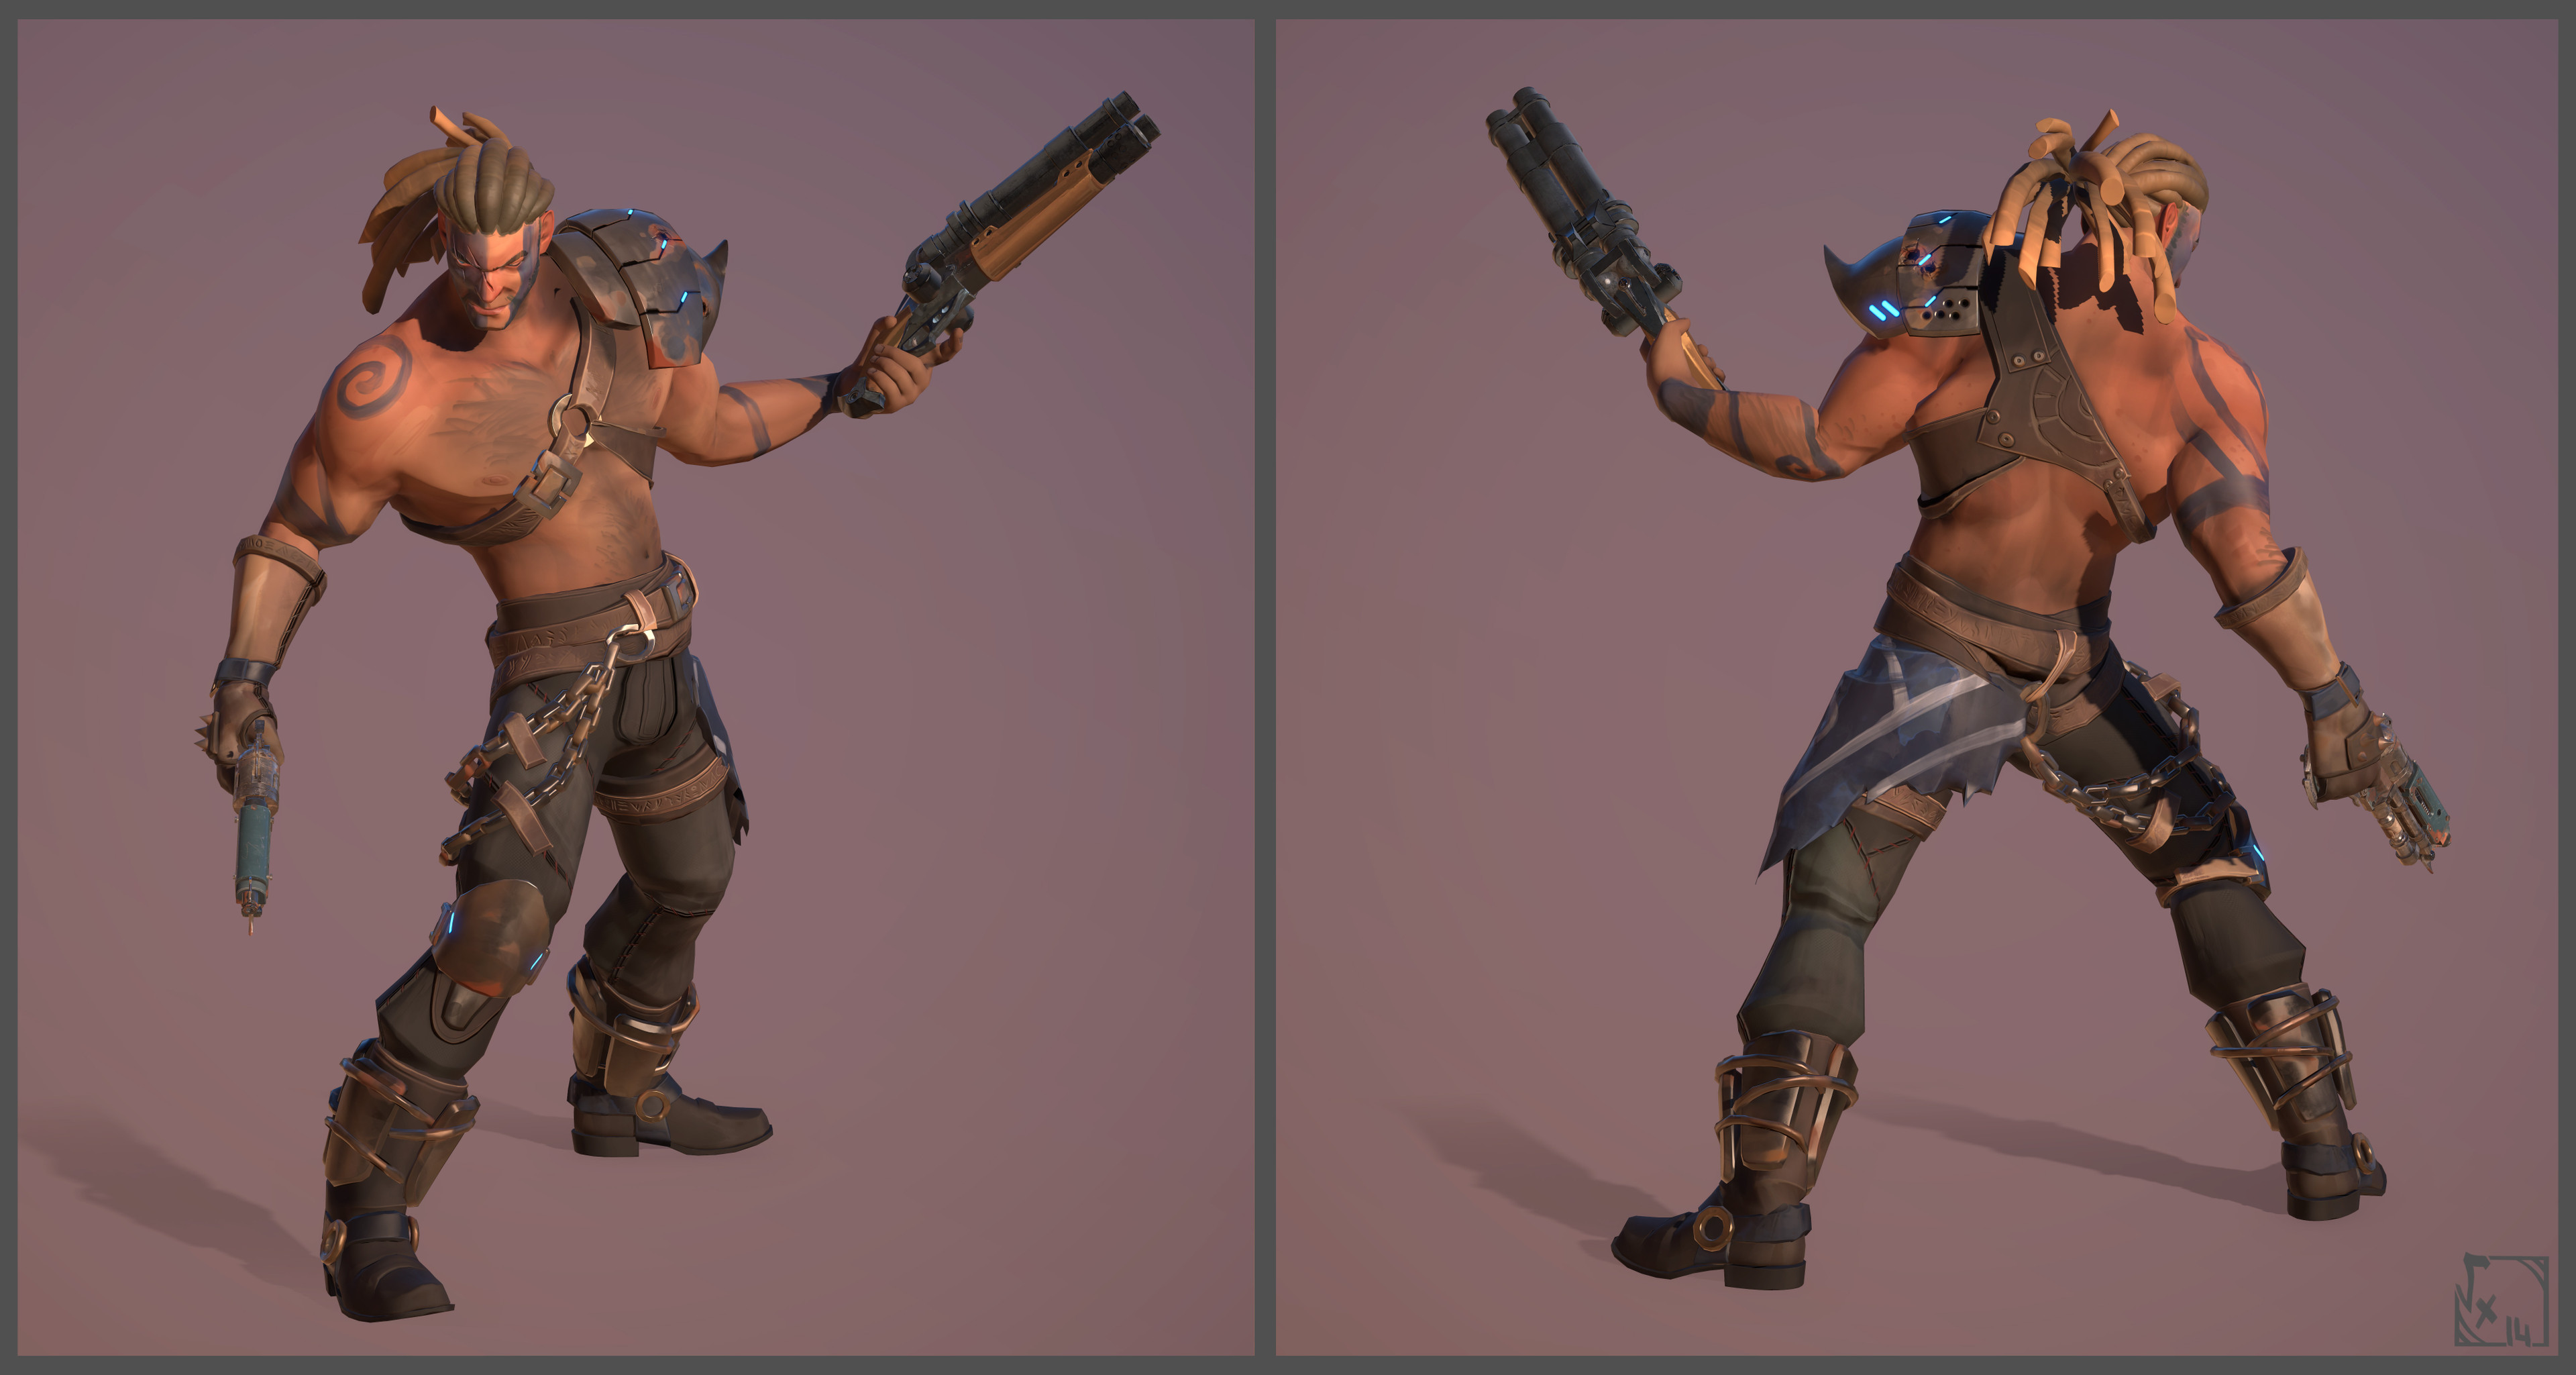 BraveDude - Barbarian - Made with Maya/ZBrush/xNormals/3DCoat/Akeytsu by Coralie Bruchon ( Sculpt/Lowpoly/Uvs/Bake ) Anthony Daneluzzi ( Weapon Modeling/Texturing ) & me ( Textures/Rig/Posing )